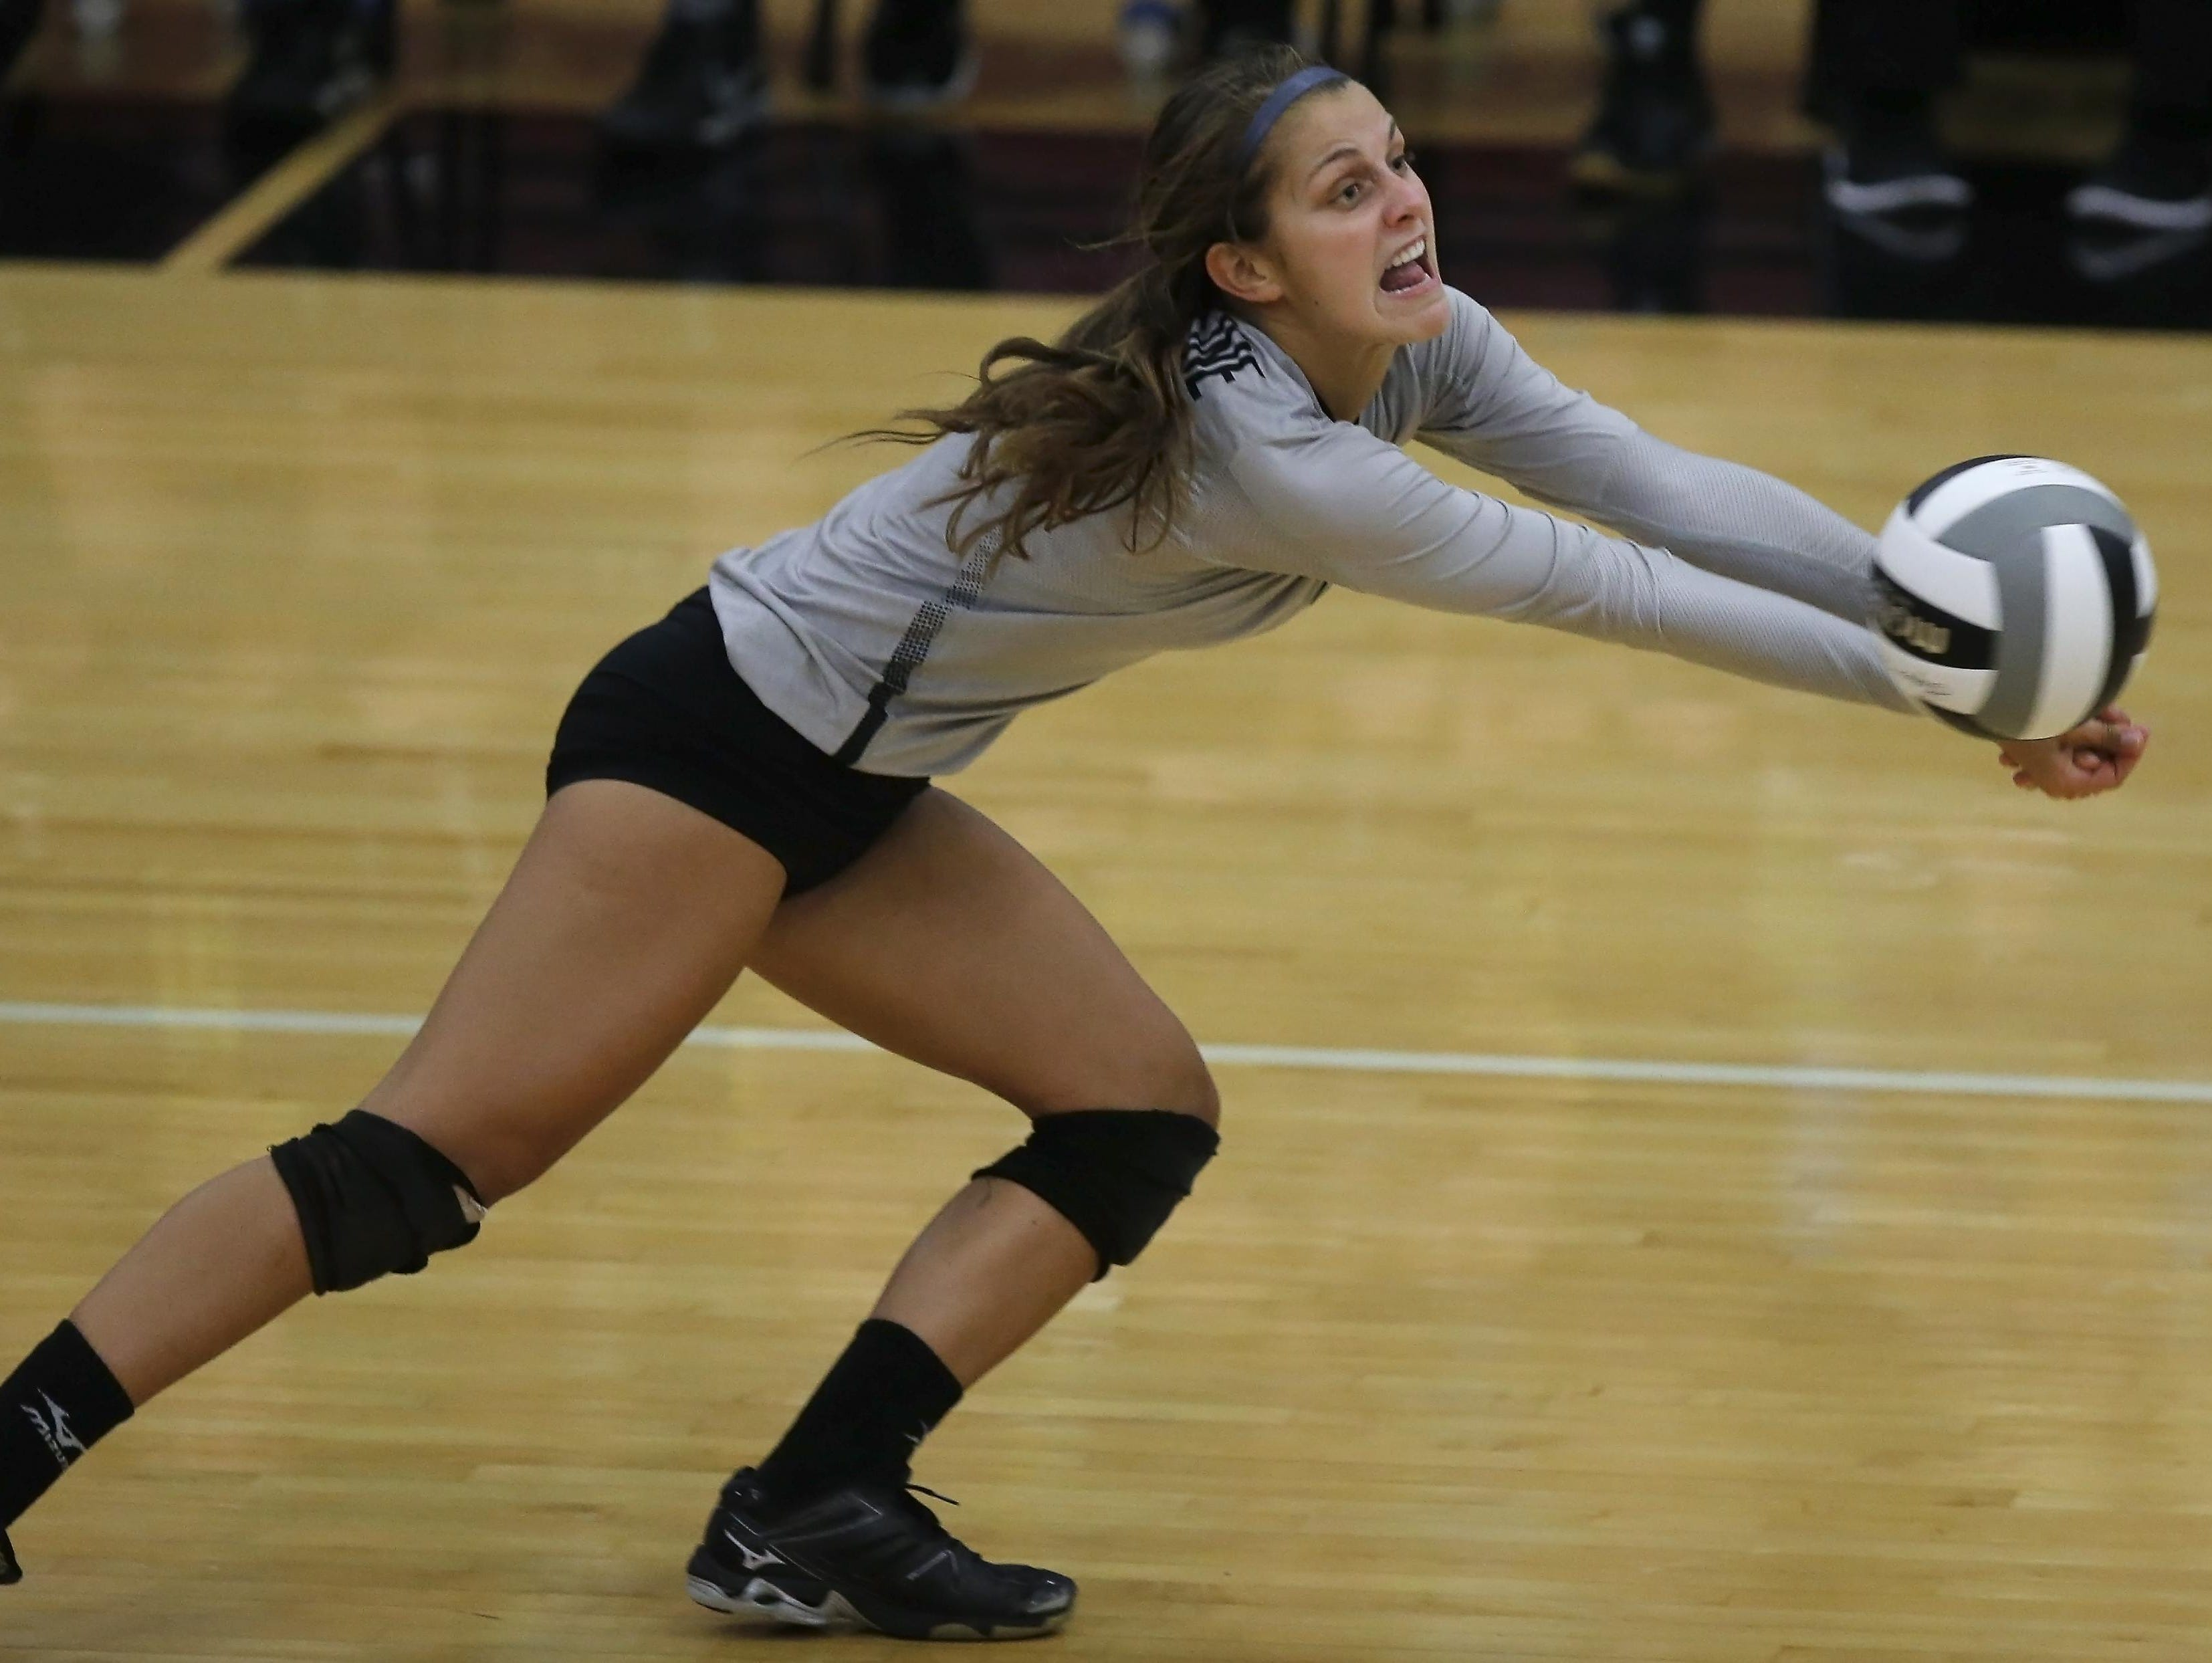 Ursuline's Avery Naylor dives for a dig during the Lions' win over Lakota East Tuesday.